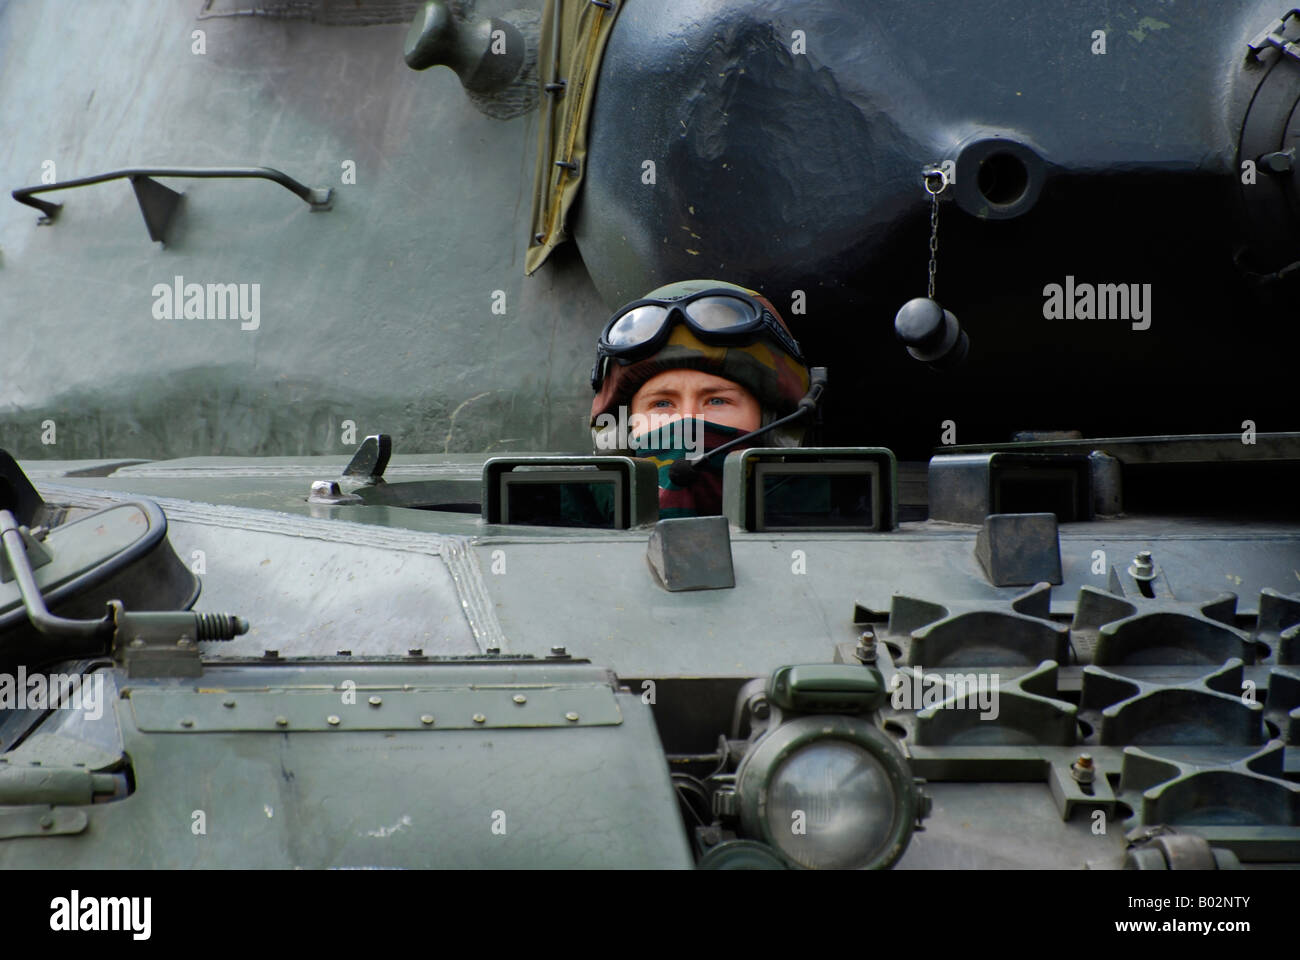 Tank driver of a Leopard 1A5 MBT of the Belgian Army. - Stock Image